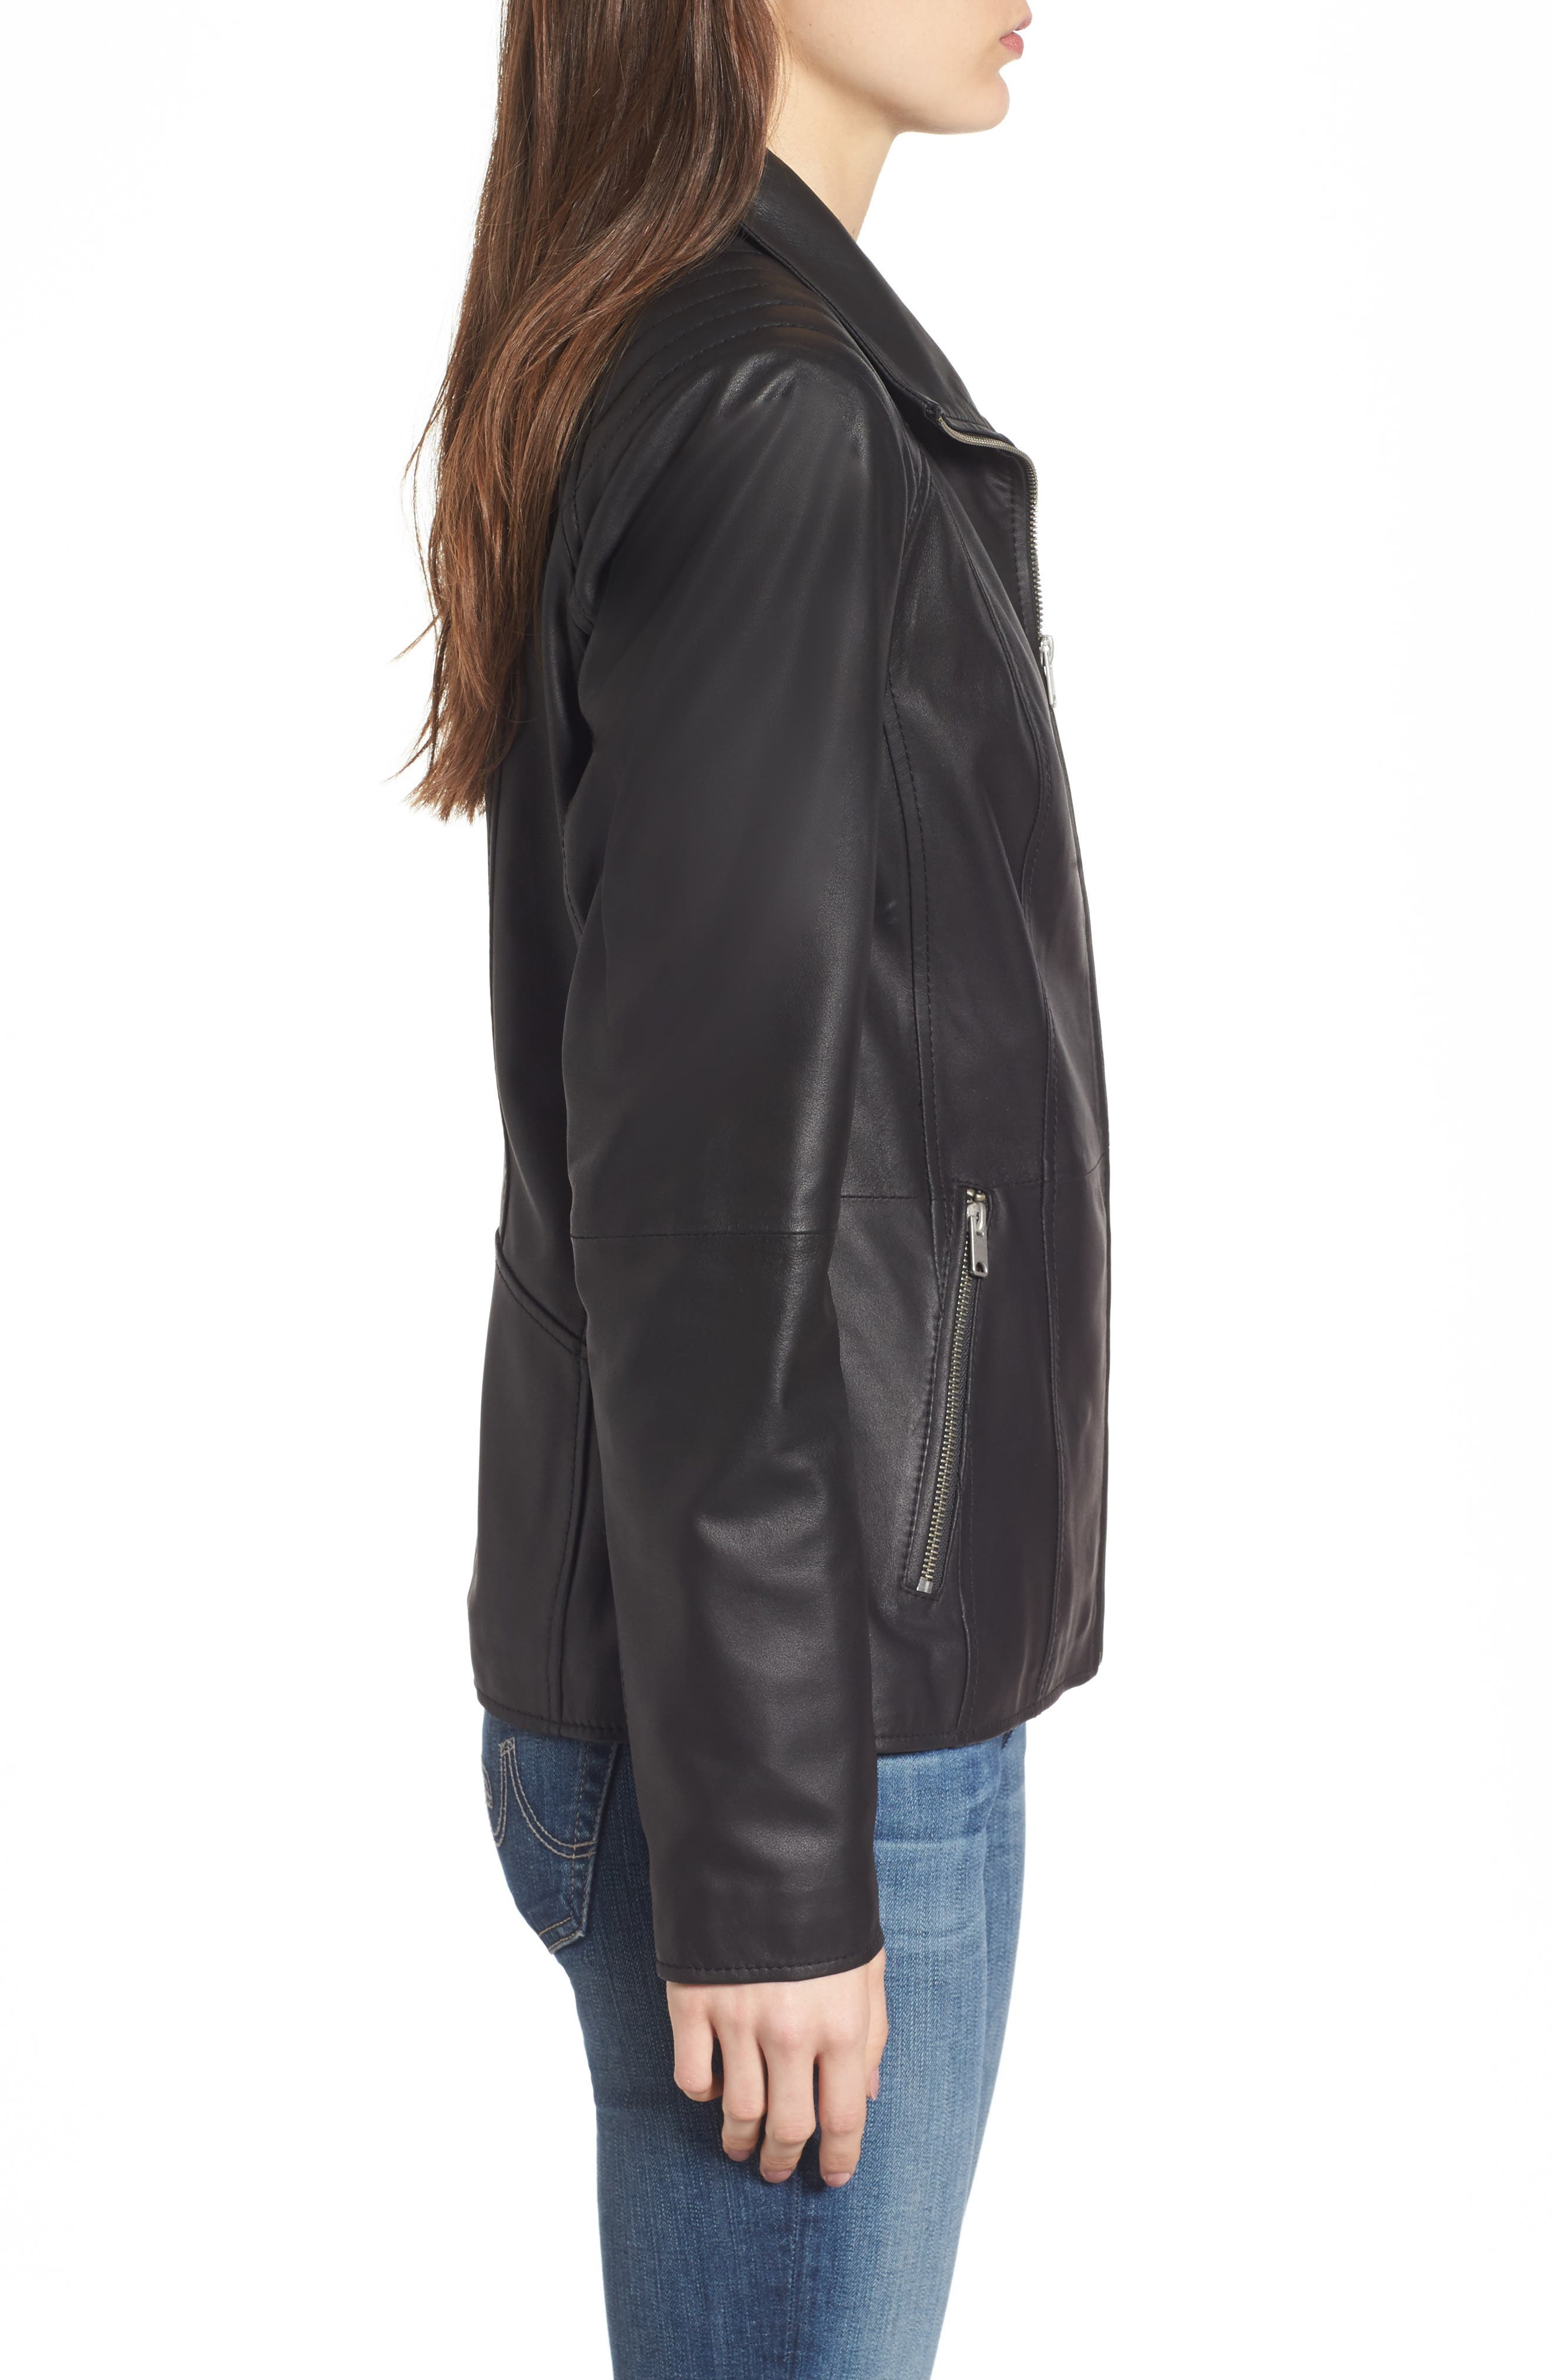 Fabian Feather Leather Jacket,                             Alternate thumbnail 3, color,